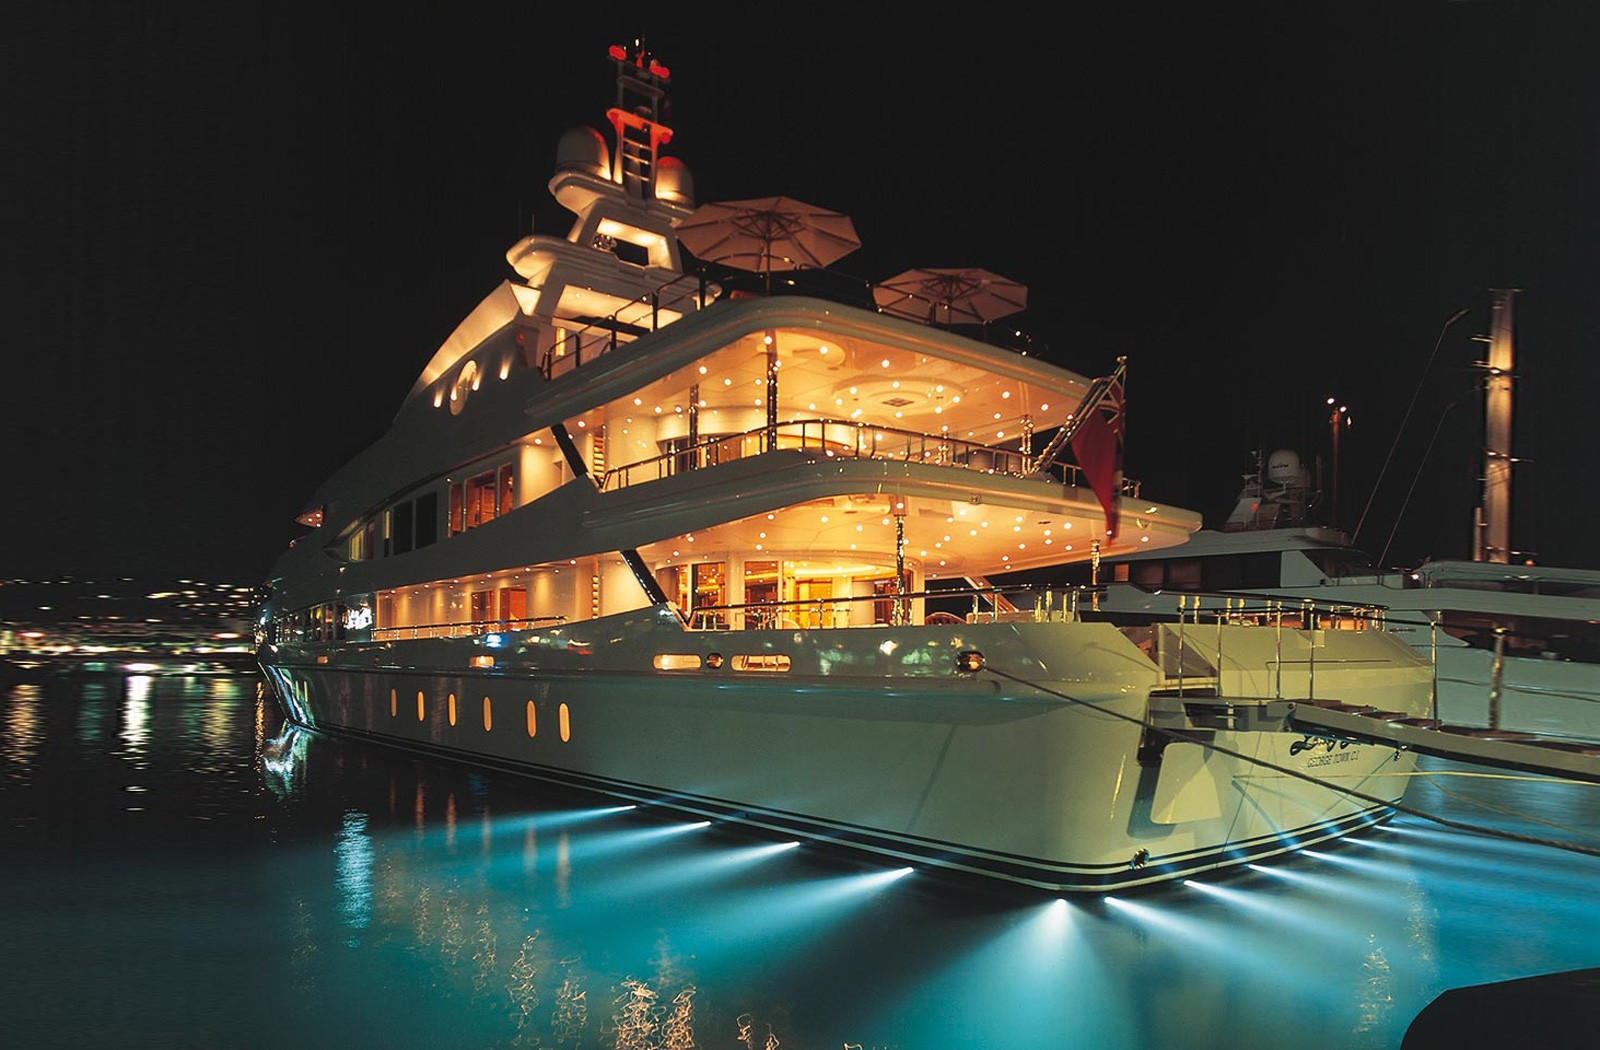 Under Water Lighting Aboard Yacht LUCKY LADY